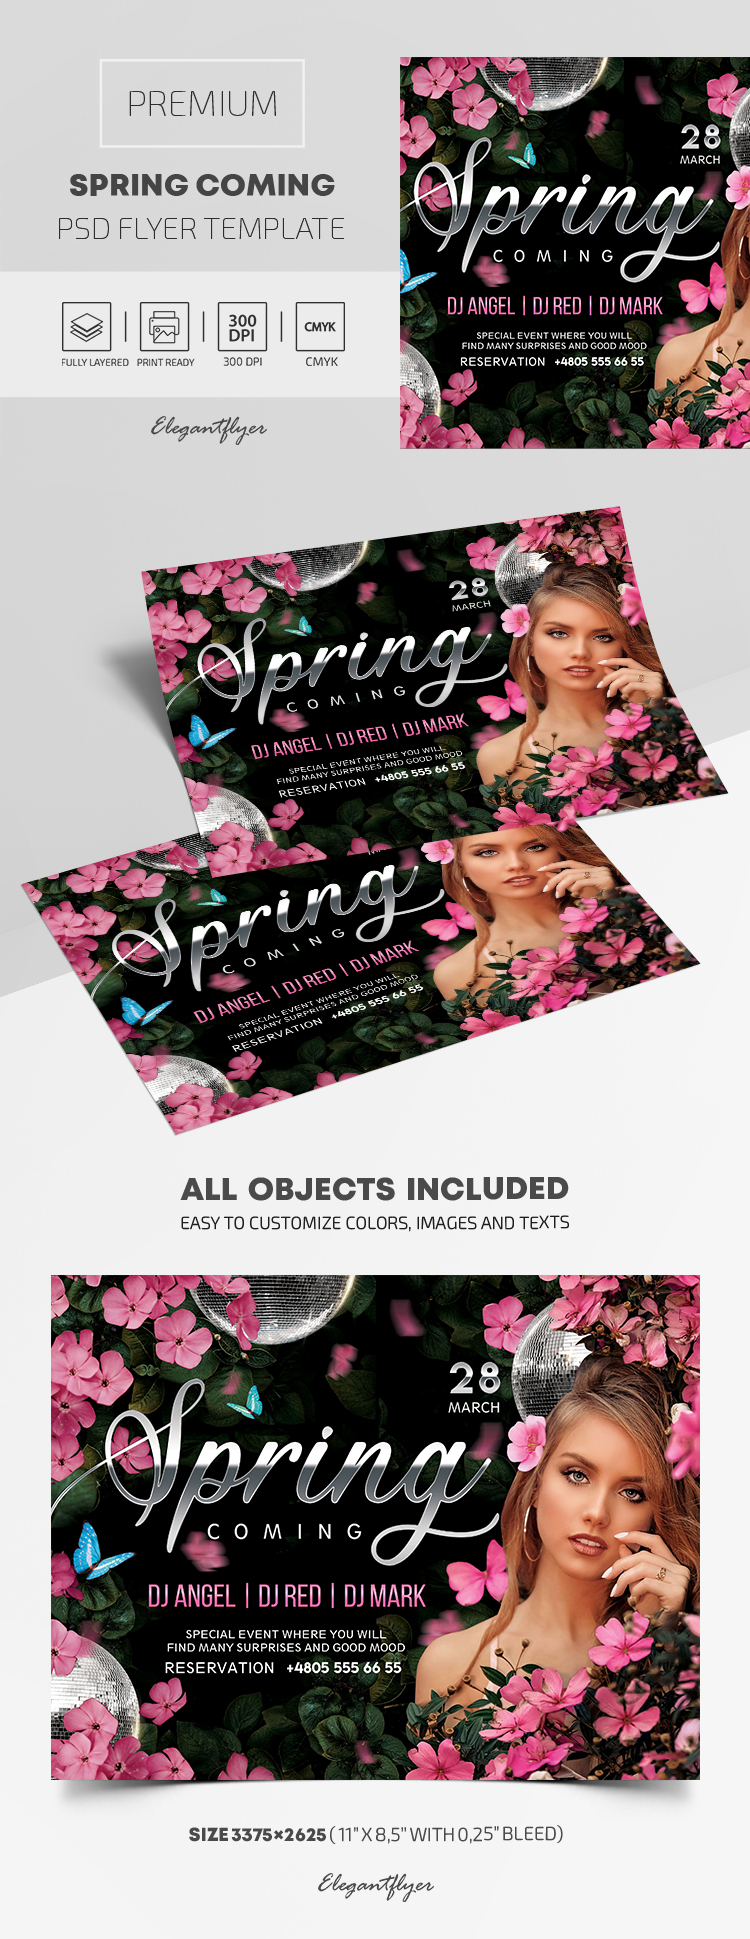 Spring Coming – Premium PSD Flyer Template